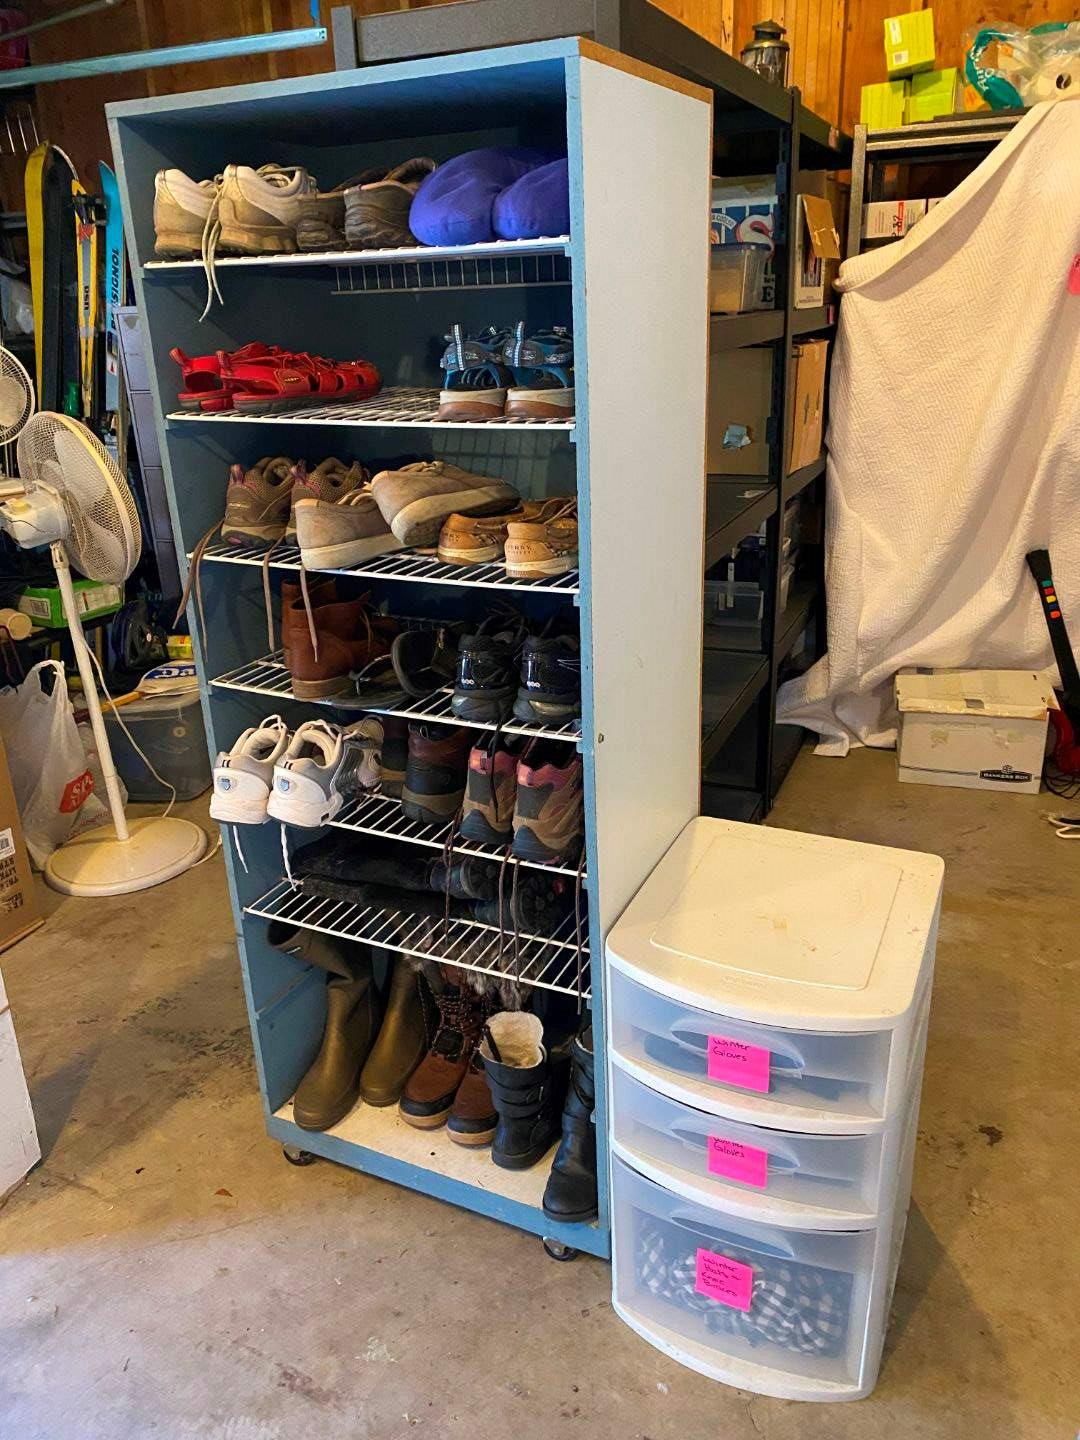 Lot # 219 - Rolling Shelf Full of Shoes w/ Bin Full of Hats & Gloves: Holly Hansen Boots, Eddie Bauer,K-Swiss, North Face & More (main image)